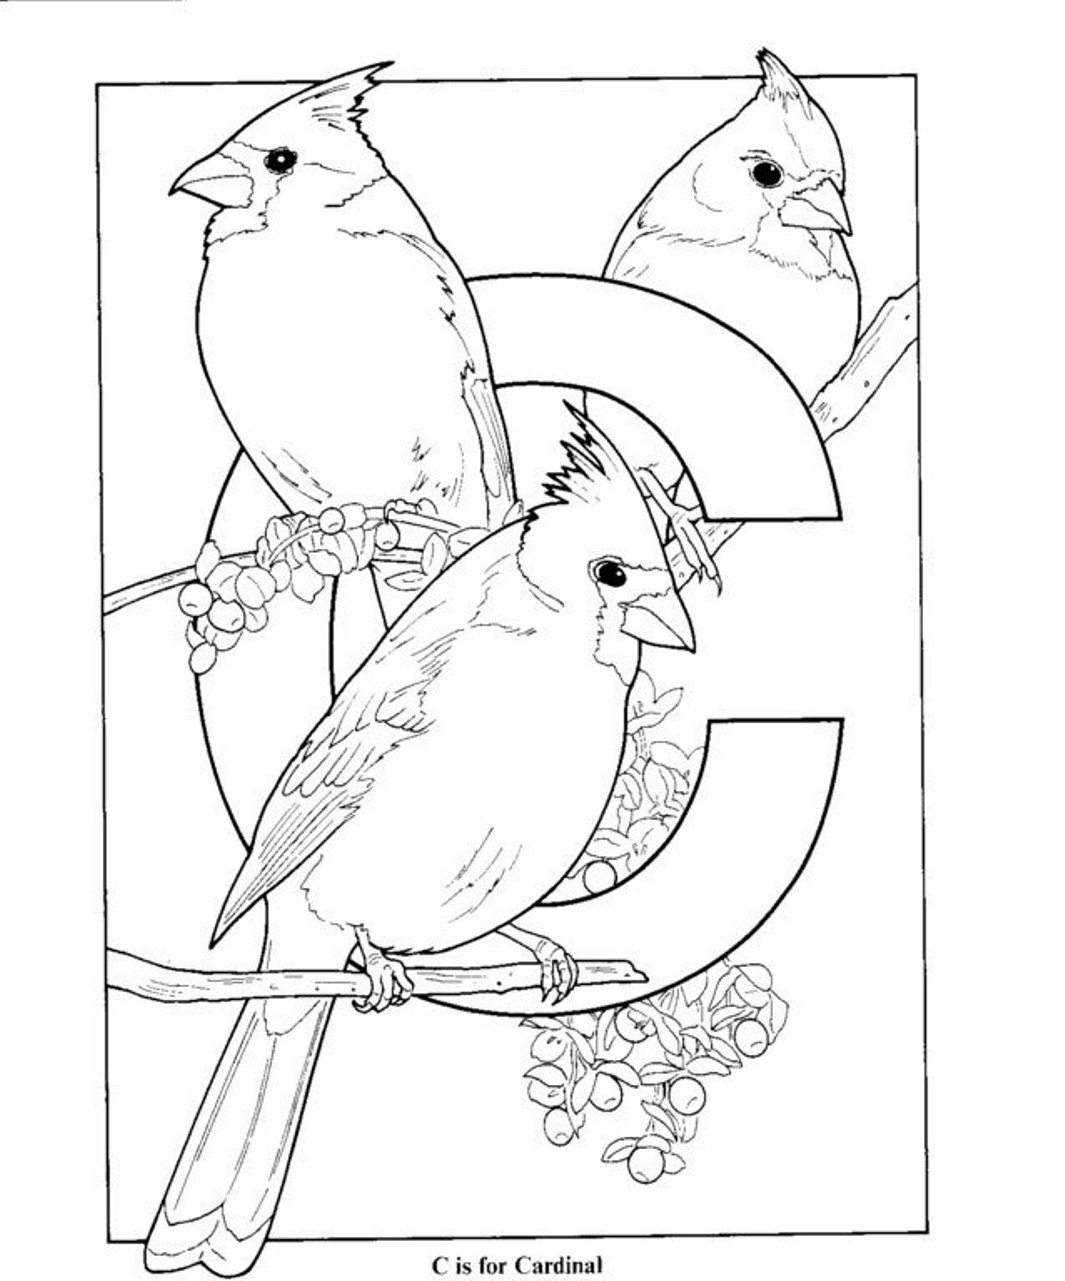 Az Coloring Pages Az Cardinals Coloring Pages At Getdrawings Free For Personal